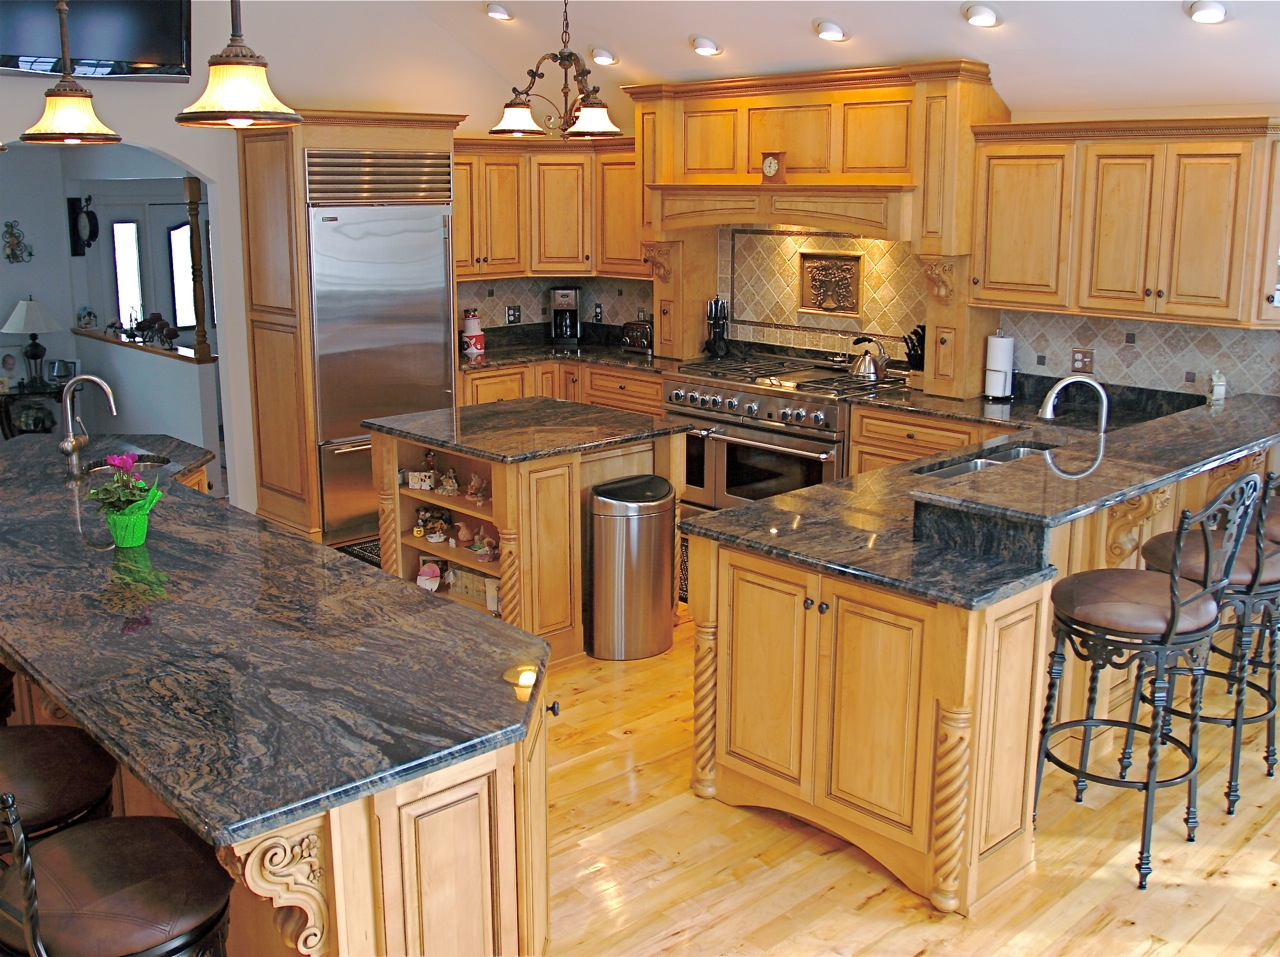 marble granite floor popular sets tiles countertop kitchens large white costco what vase best at table black are chairs for flower countertops kitchen size worktop and wood the most